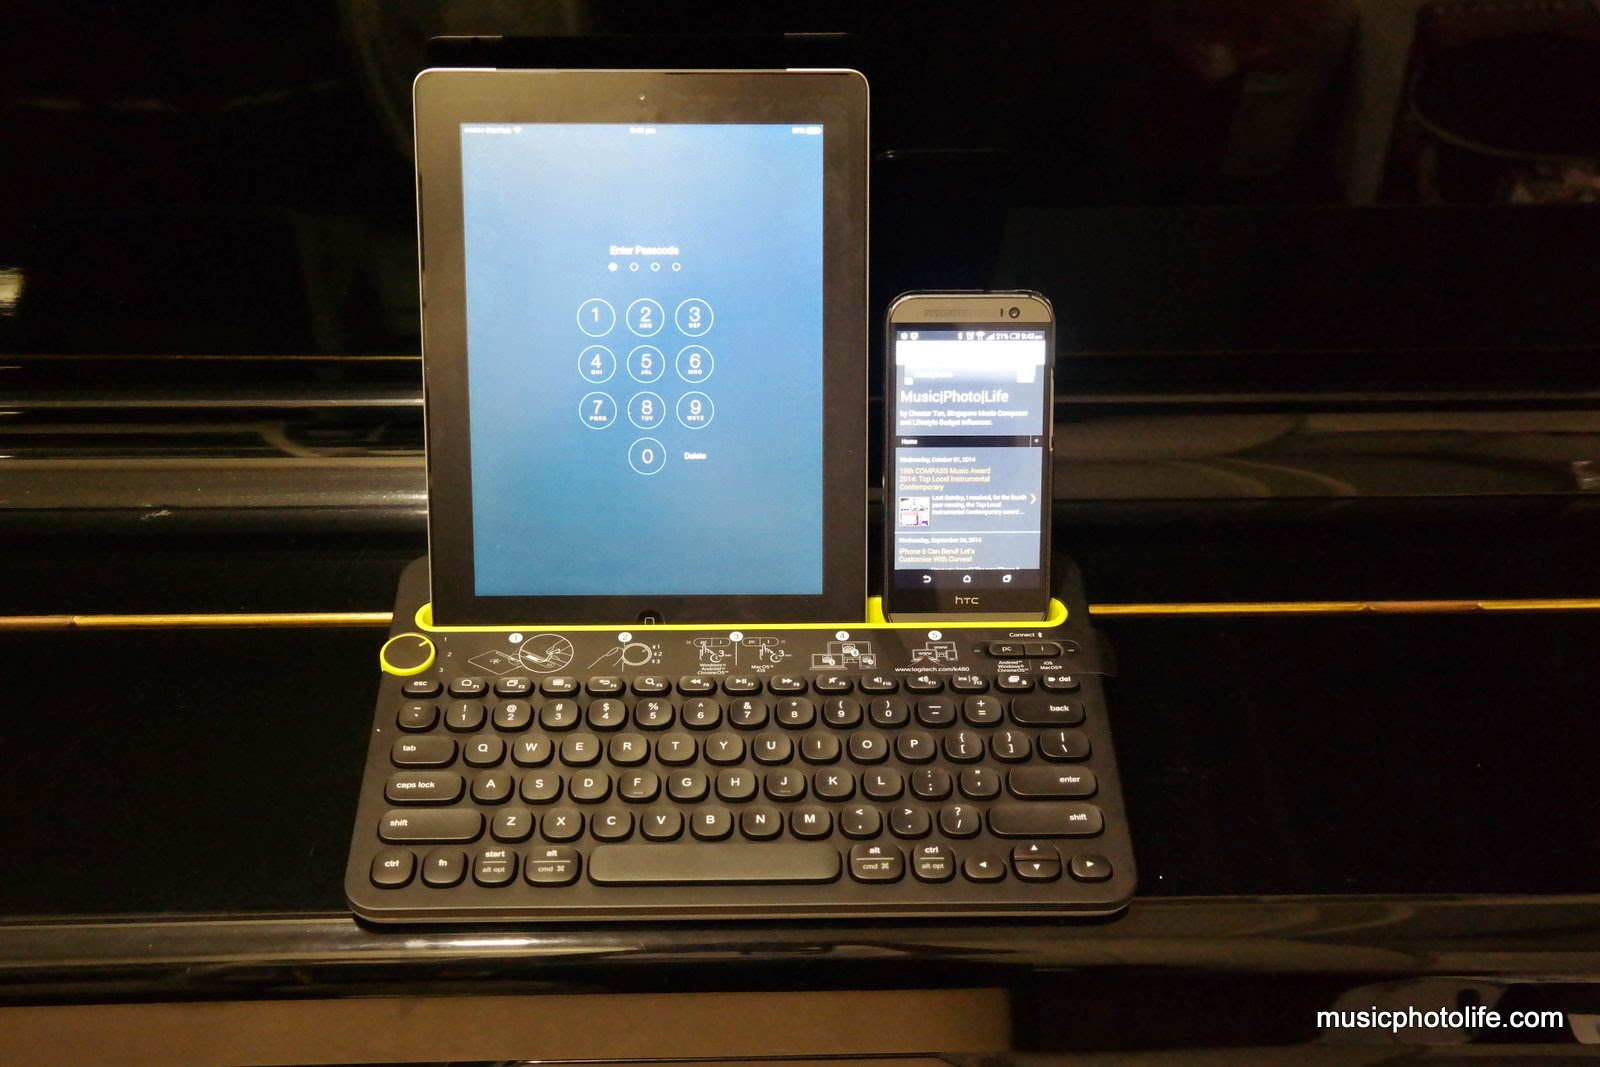 Logitech Bluetooth Multi Device Keyboard K480 Mpl Uat And If You Own The Samsung Galaxy Note Pro 122 Sits Confidently In Portrait Orientation Without Tipping Off